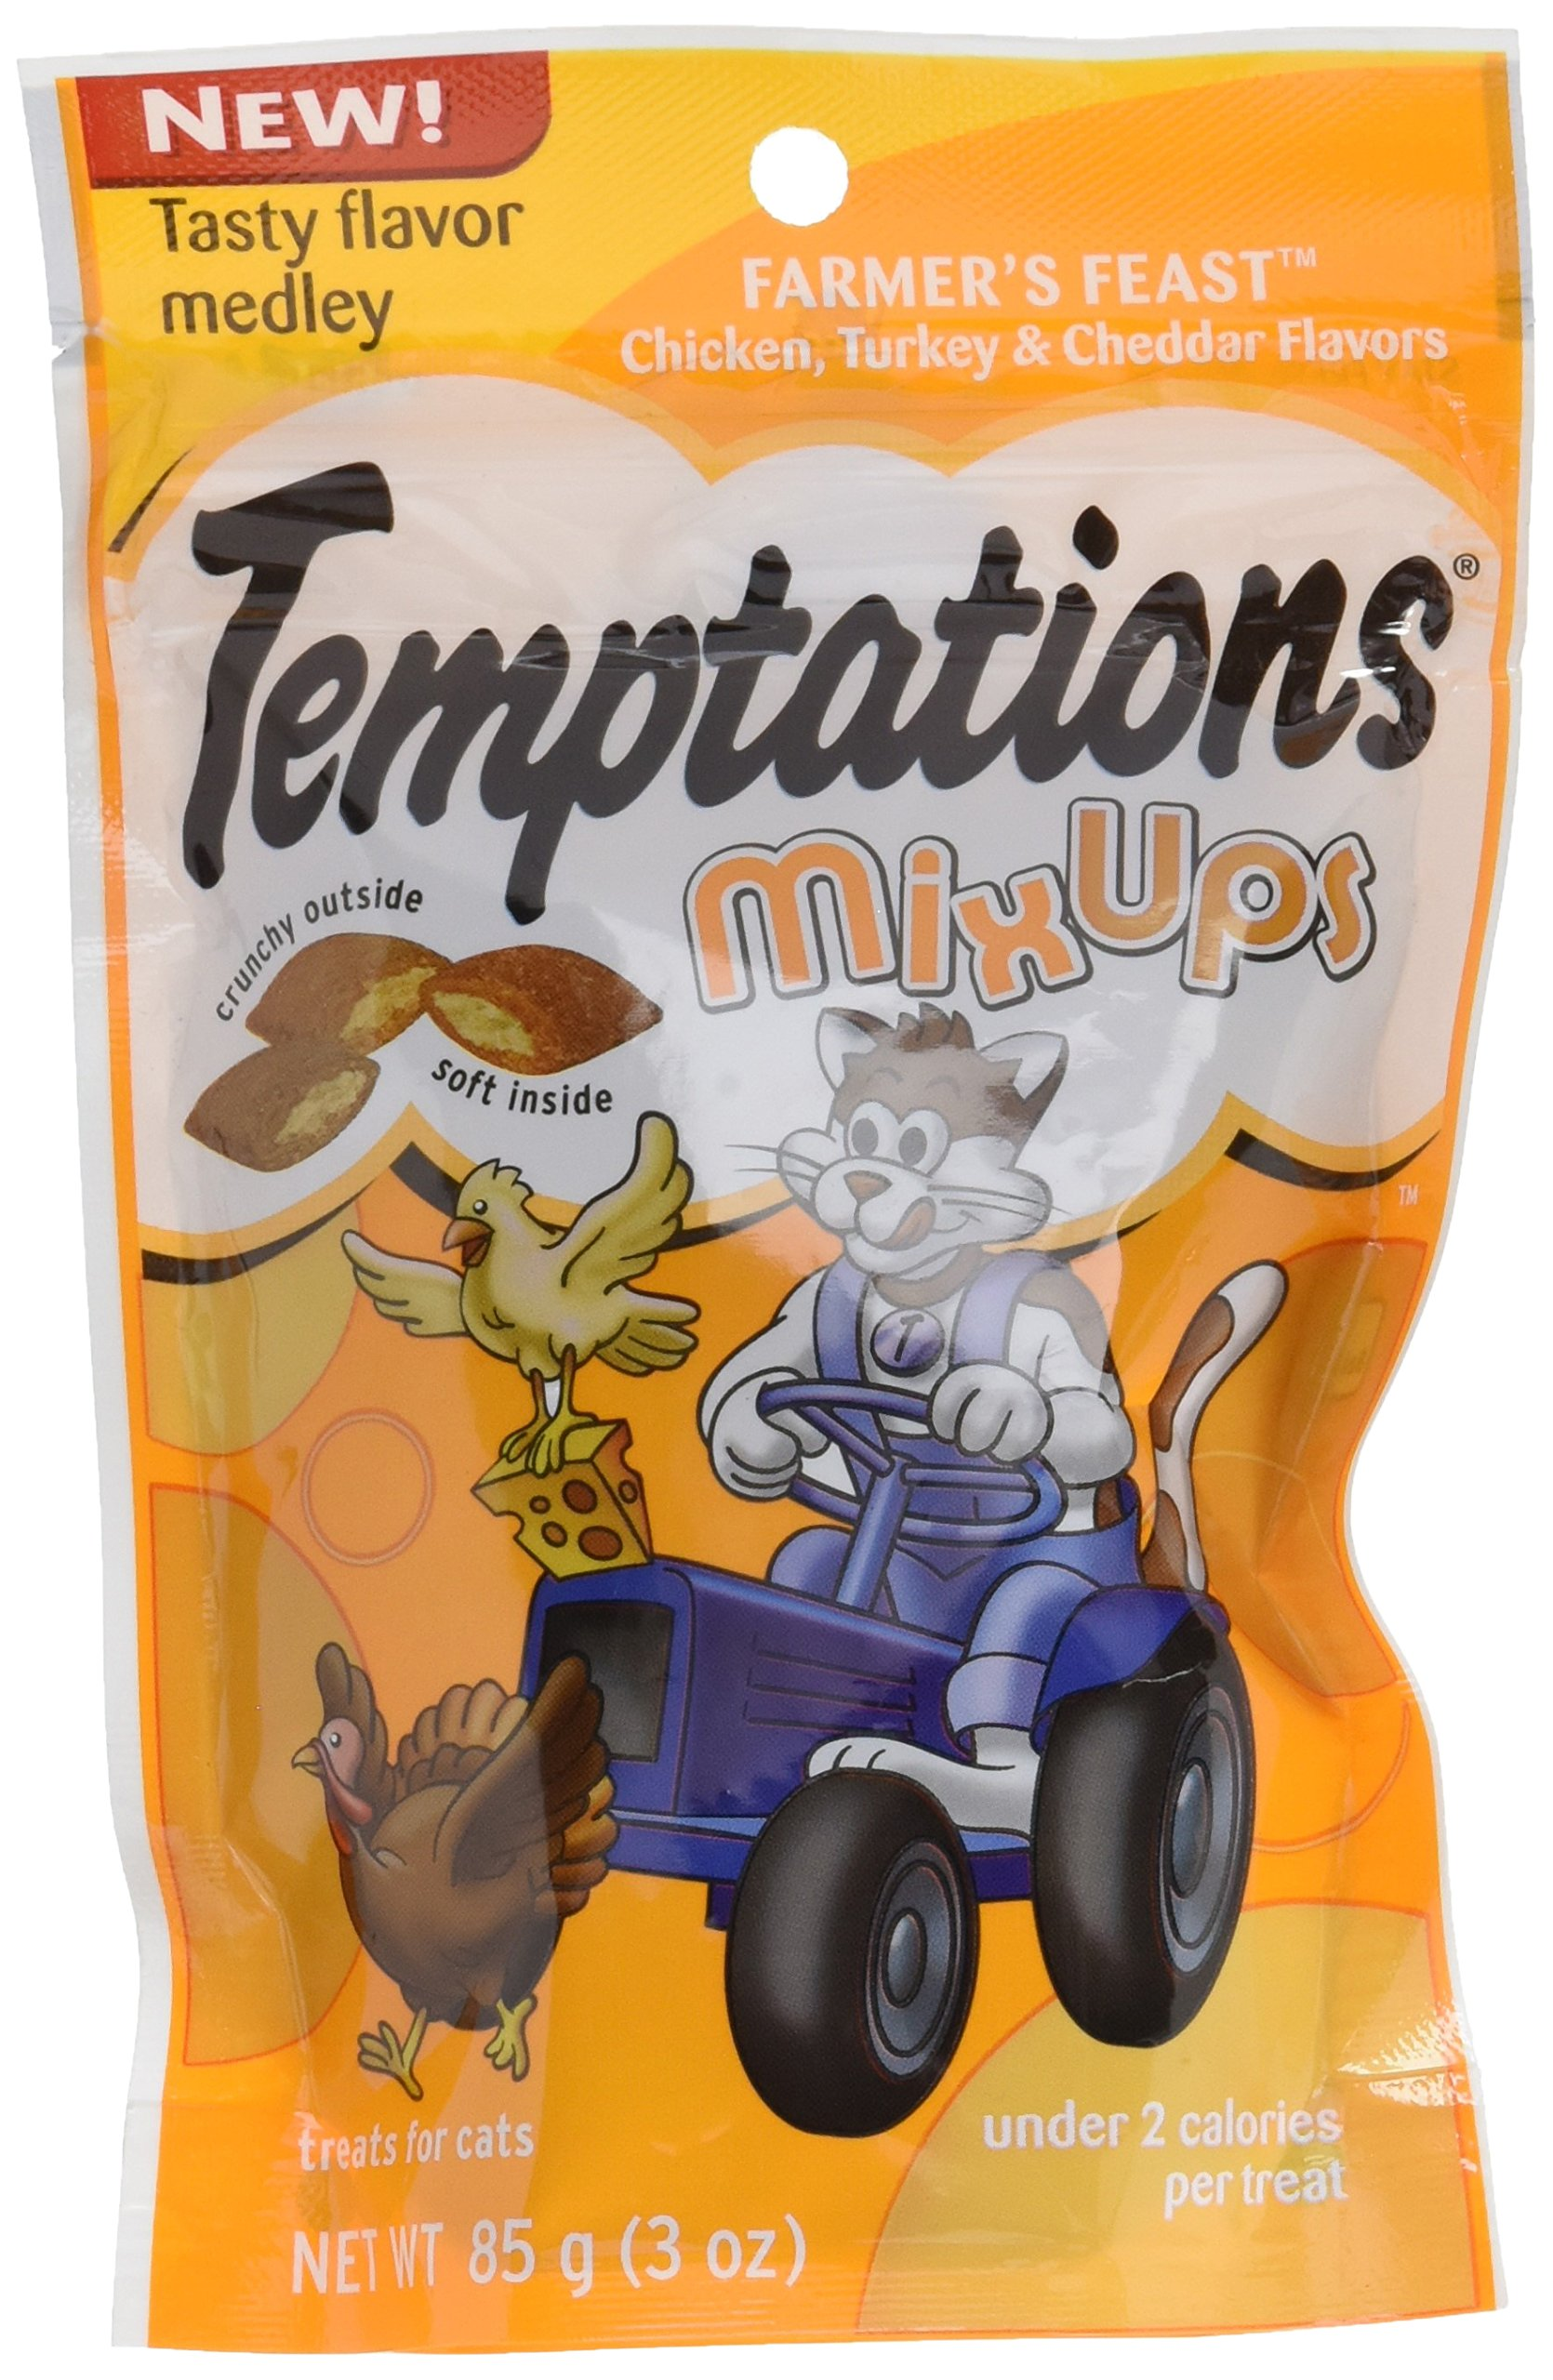 Dogswell Whiskas Temptations Mixups Farmer's Feast 3 ounces Food, 1 Pack by DOGSWELL